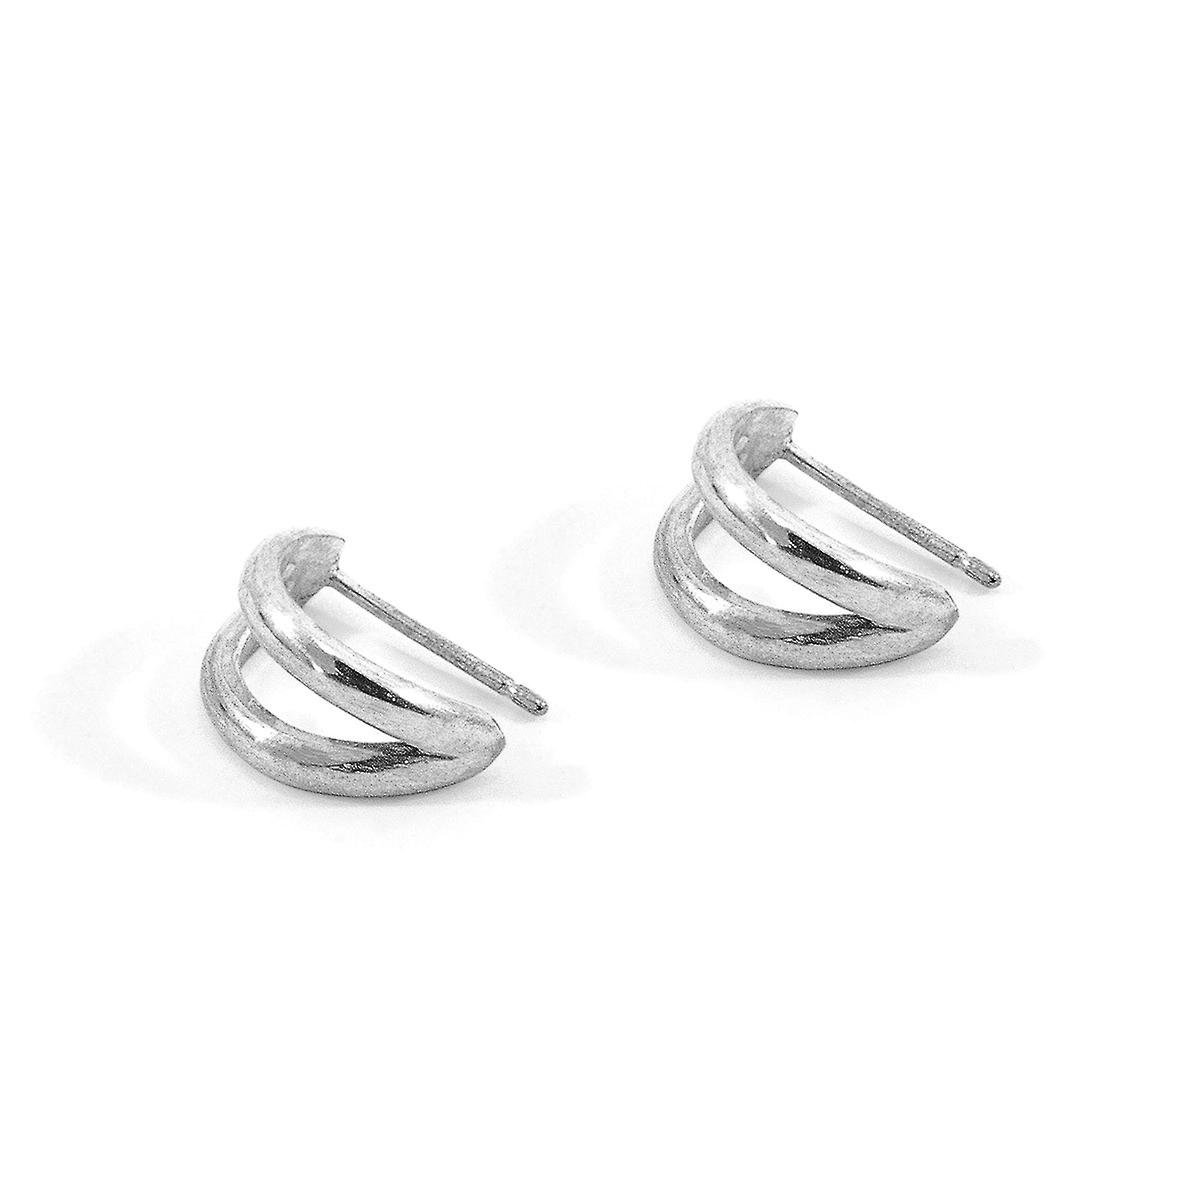 Anchor & Crew Huntington Surf Silver Earring Studs